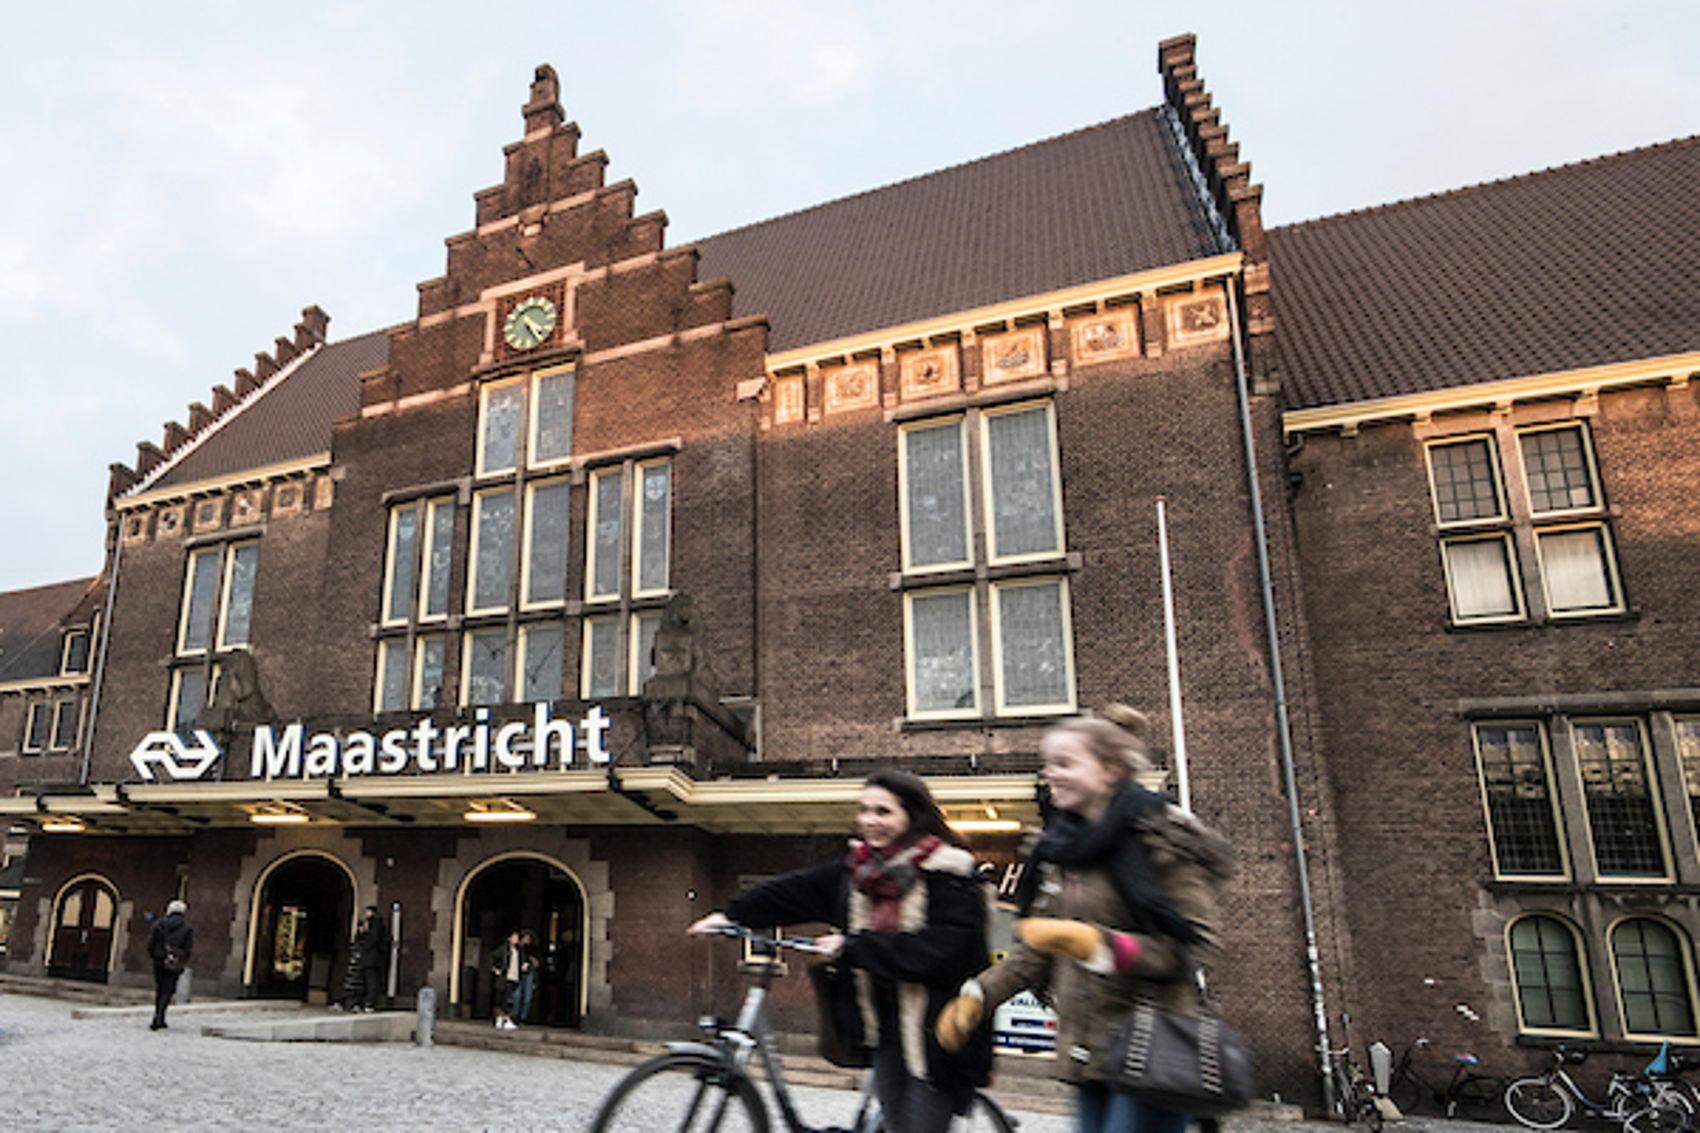 Maastricht is focusing on international rail travel